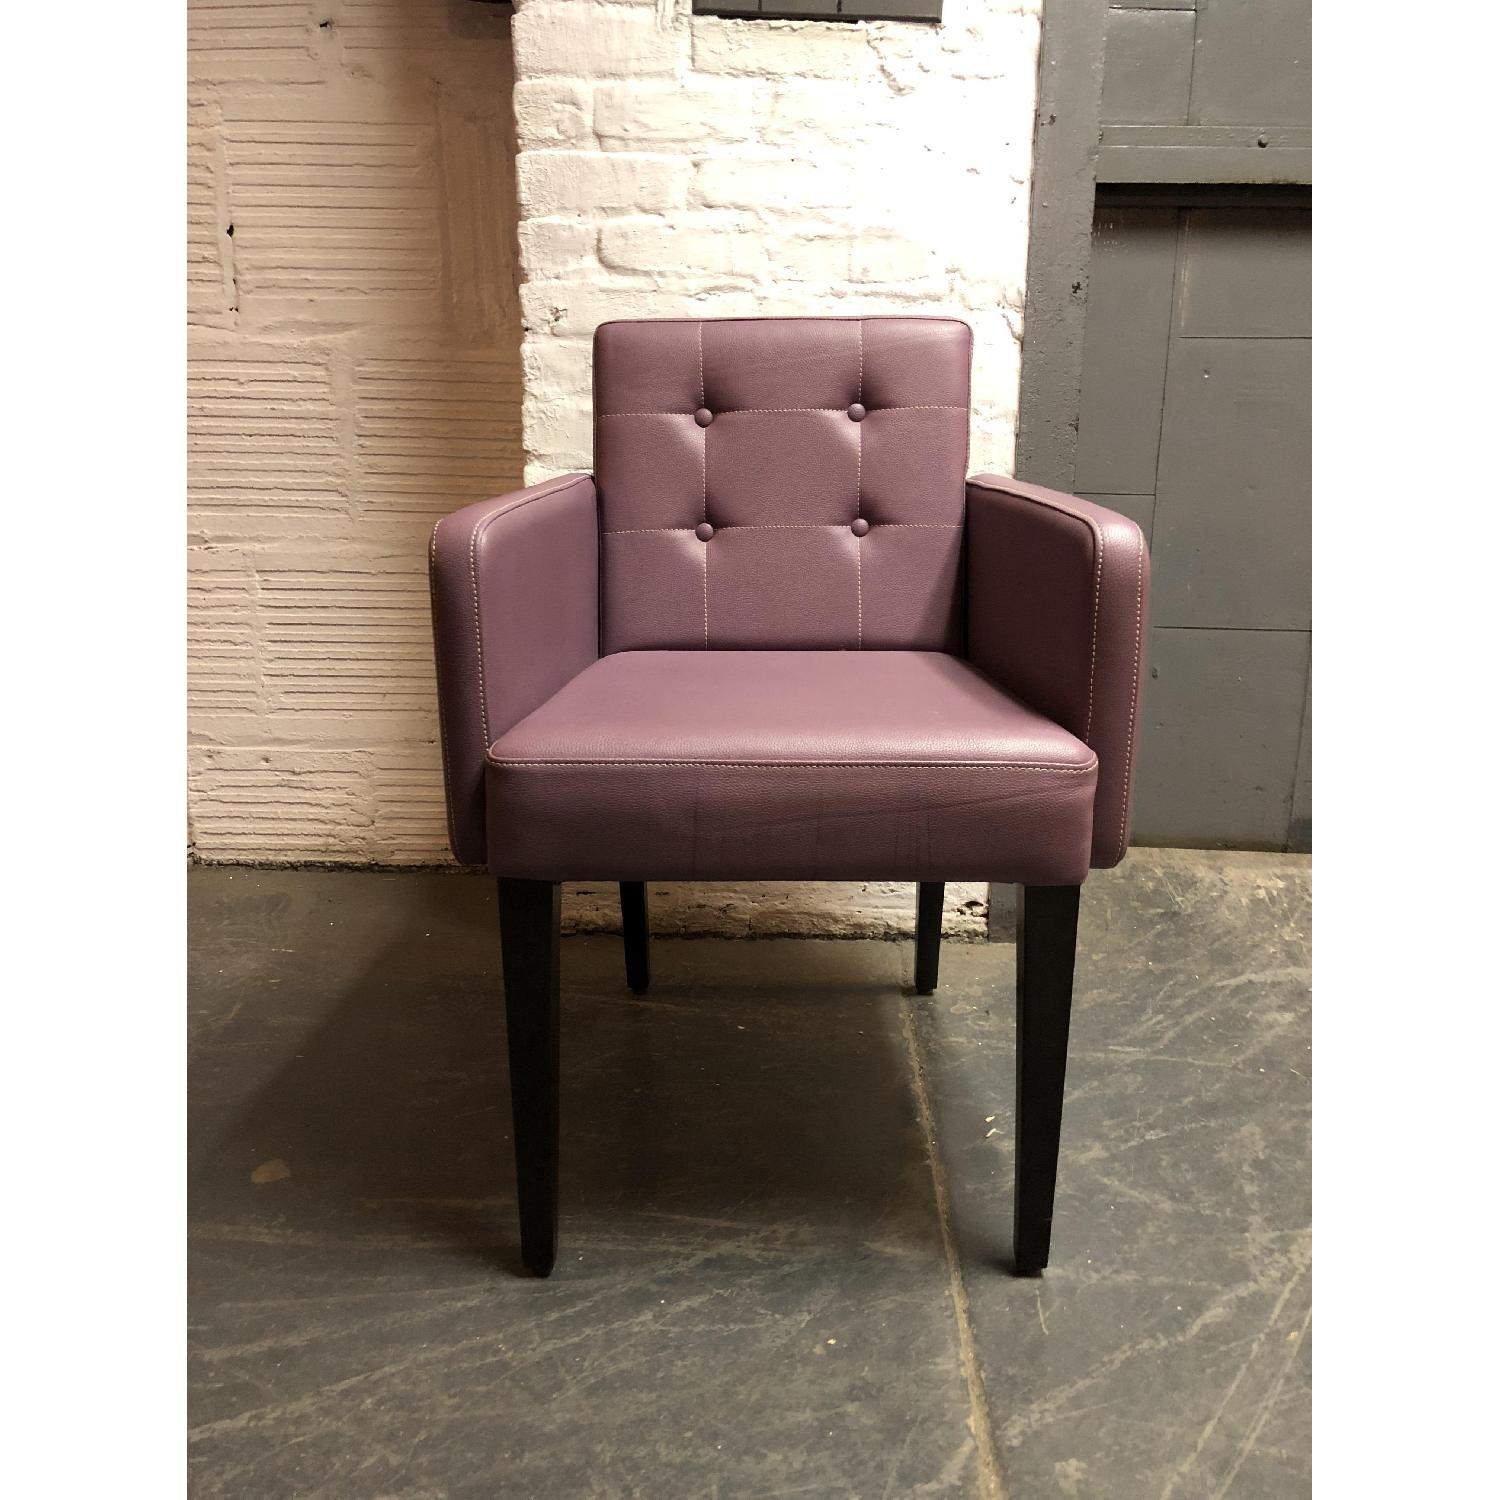 Coulboy & Co Custom Faux Leather Dining Chairs - image-1